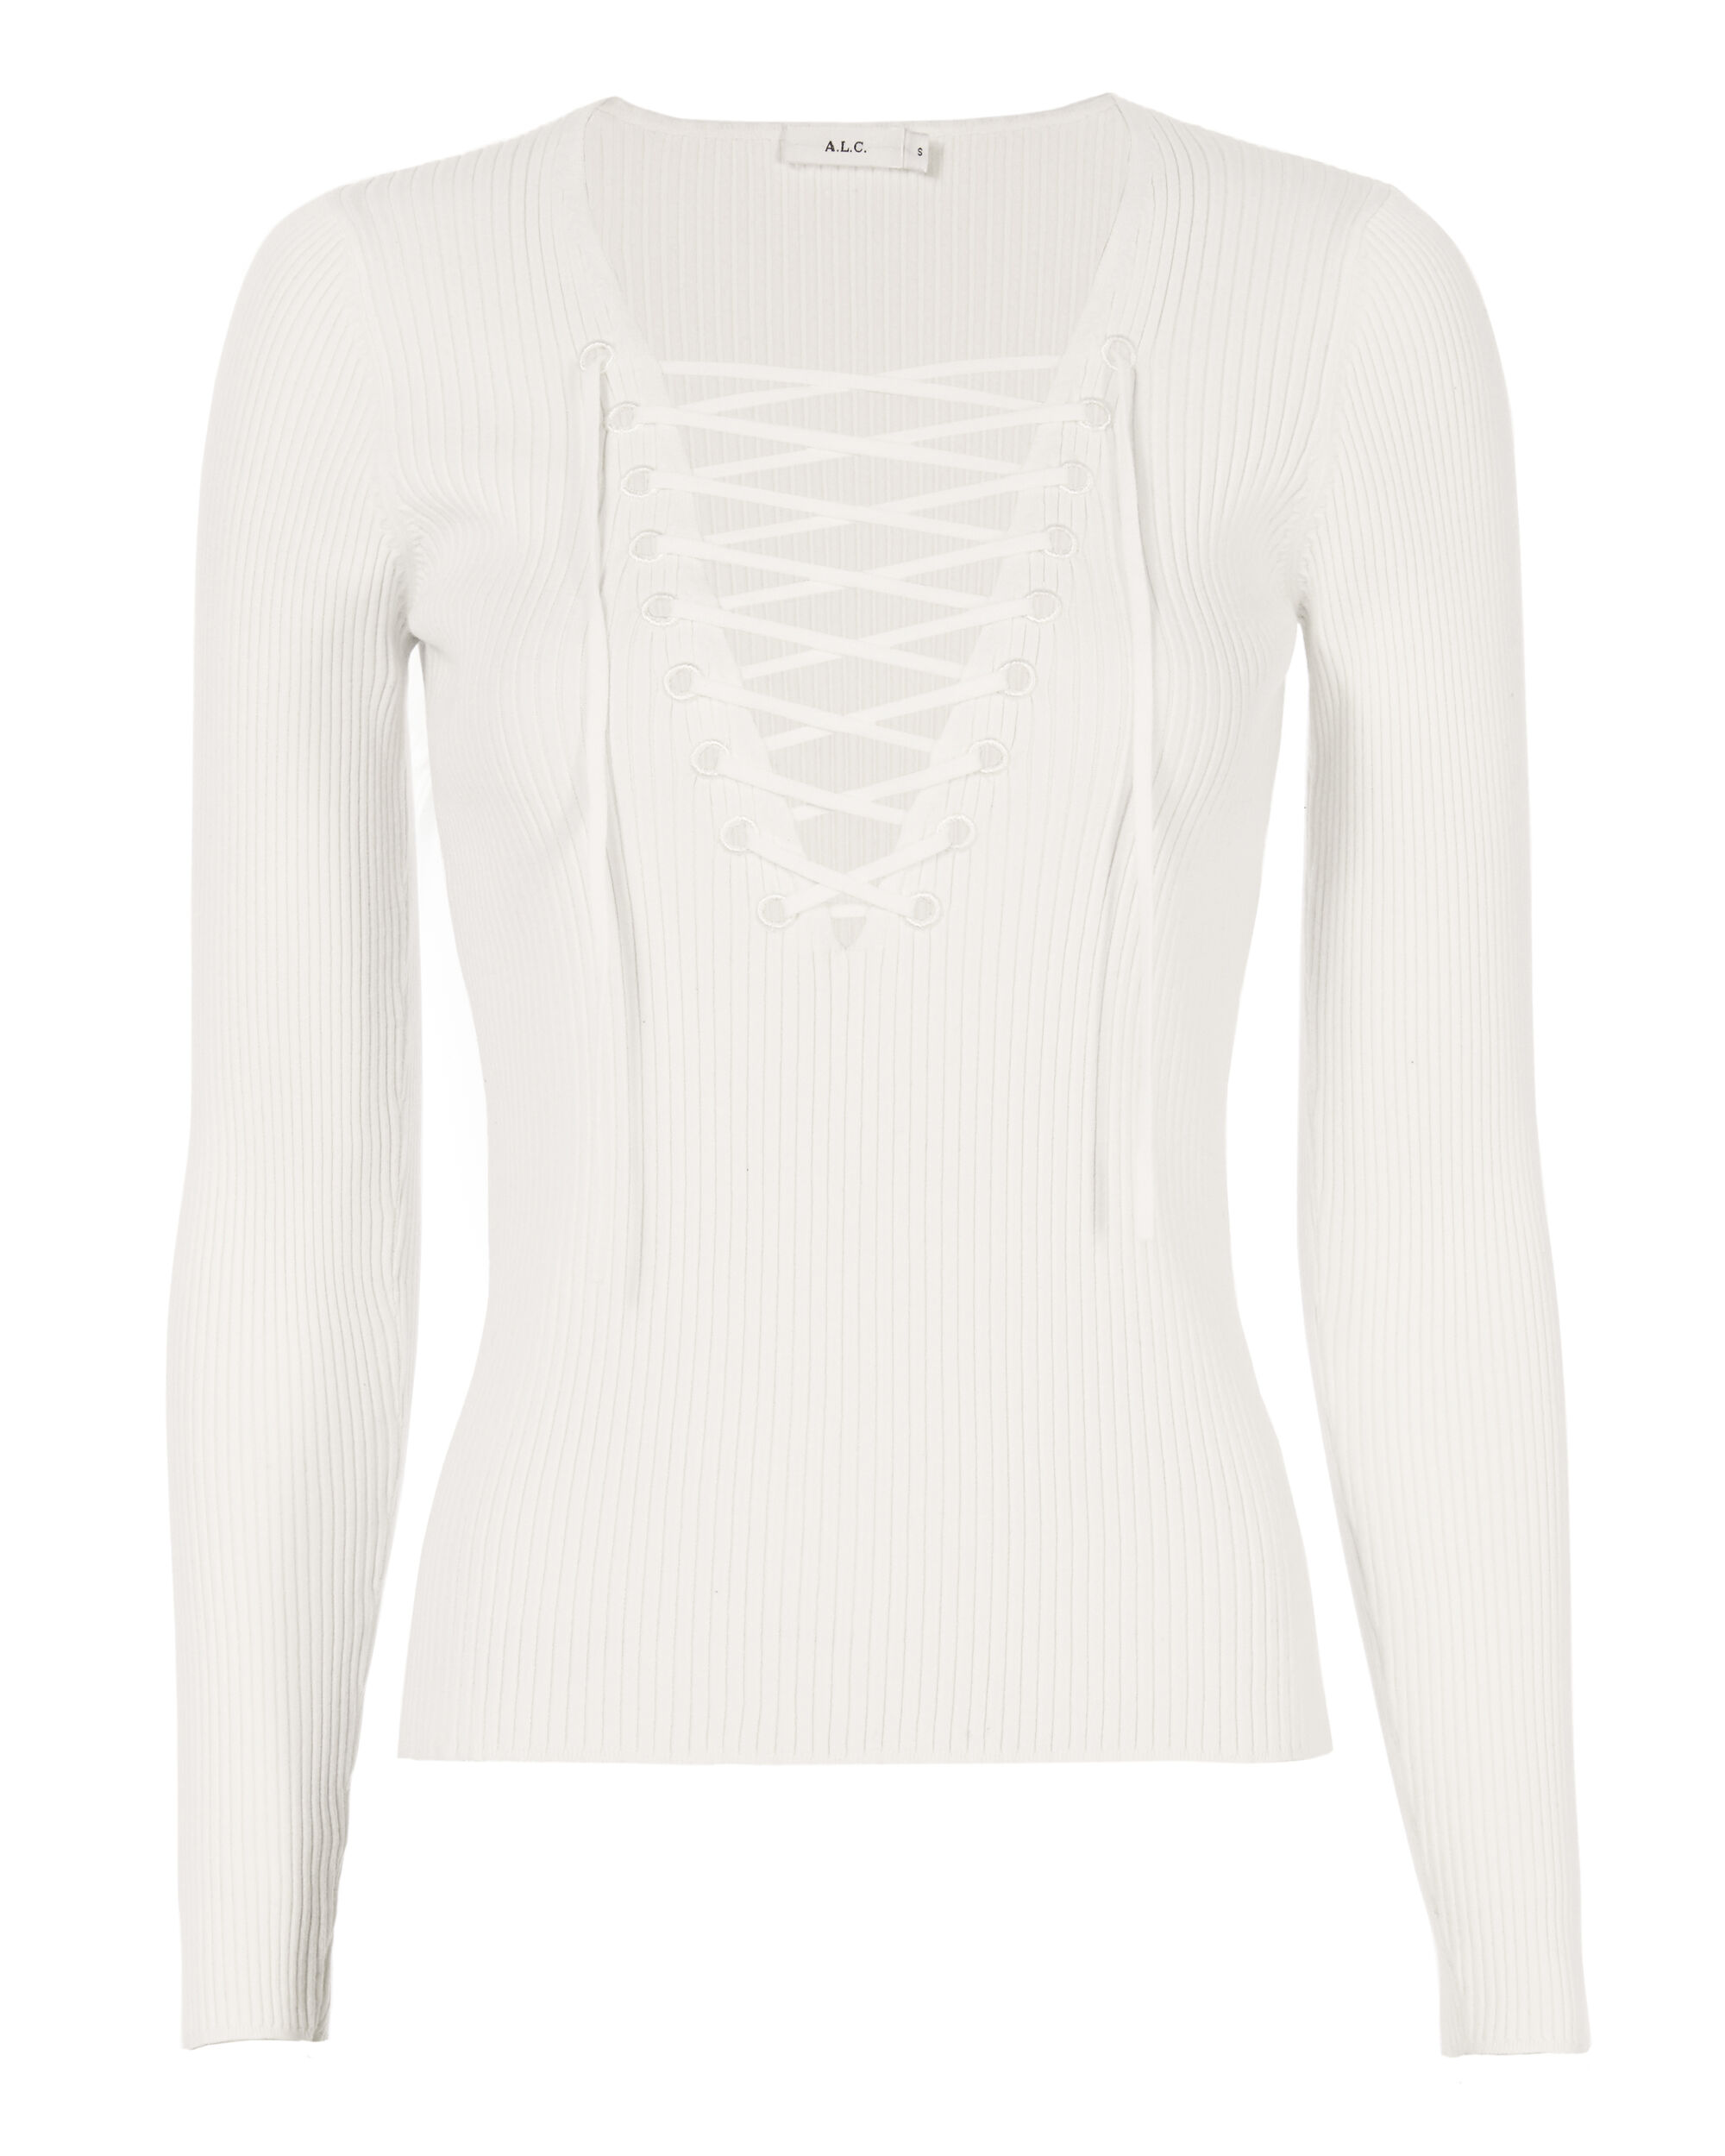 Solana Lace-Up Rib Knit Top, WHITE, hi-res